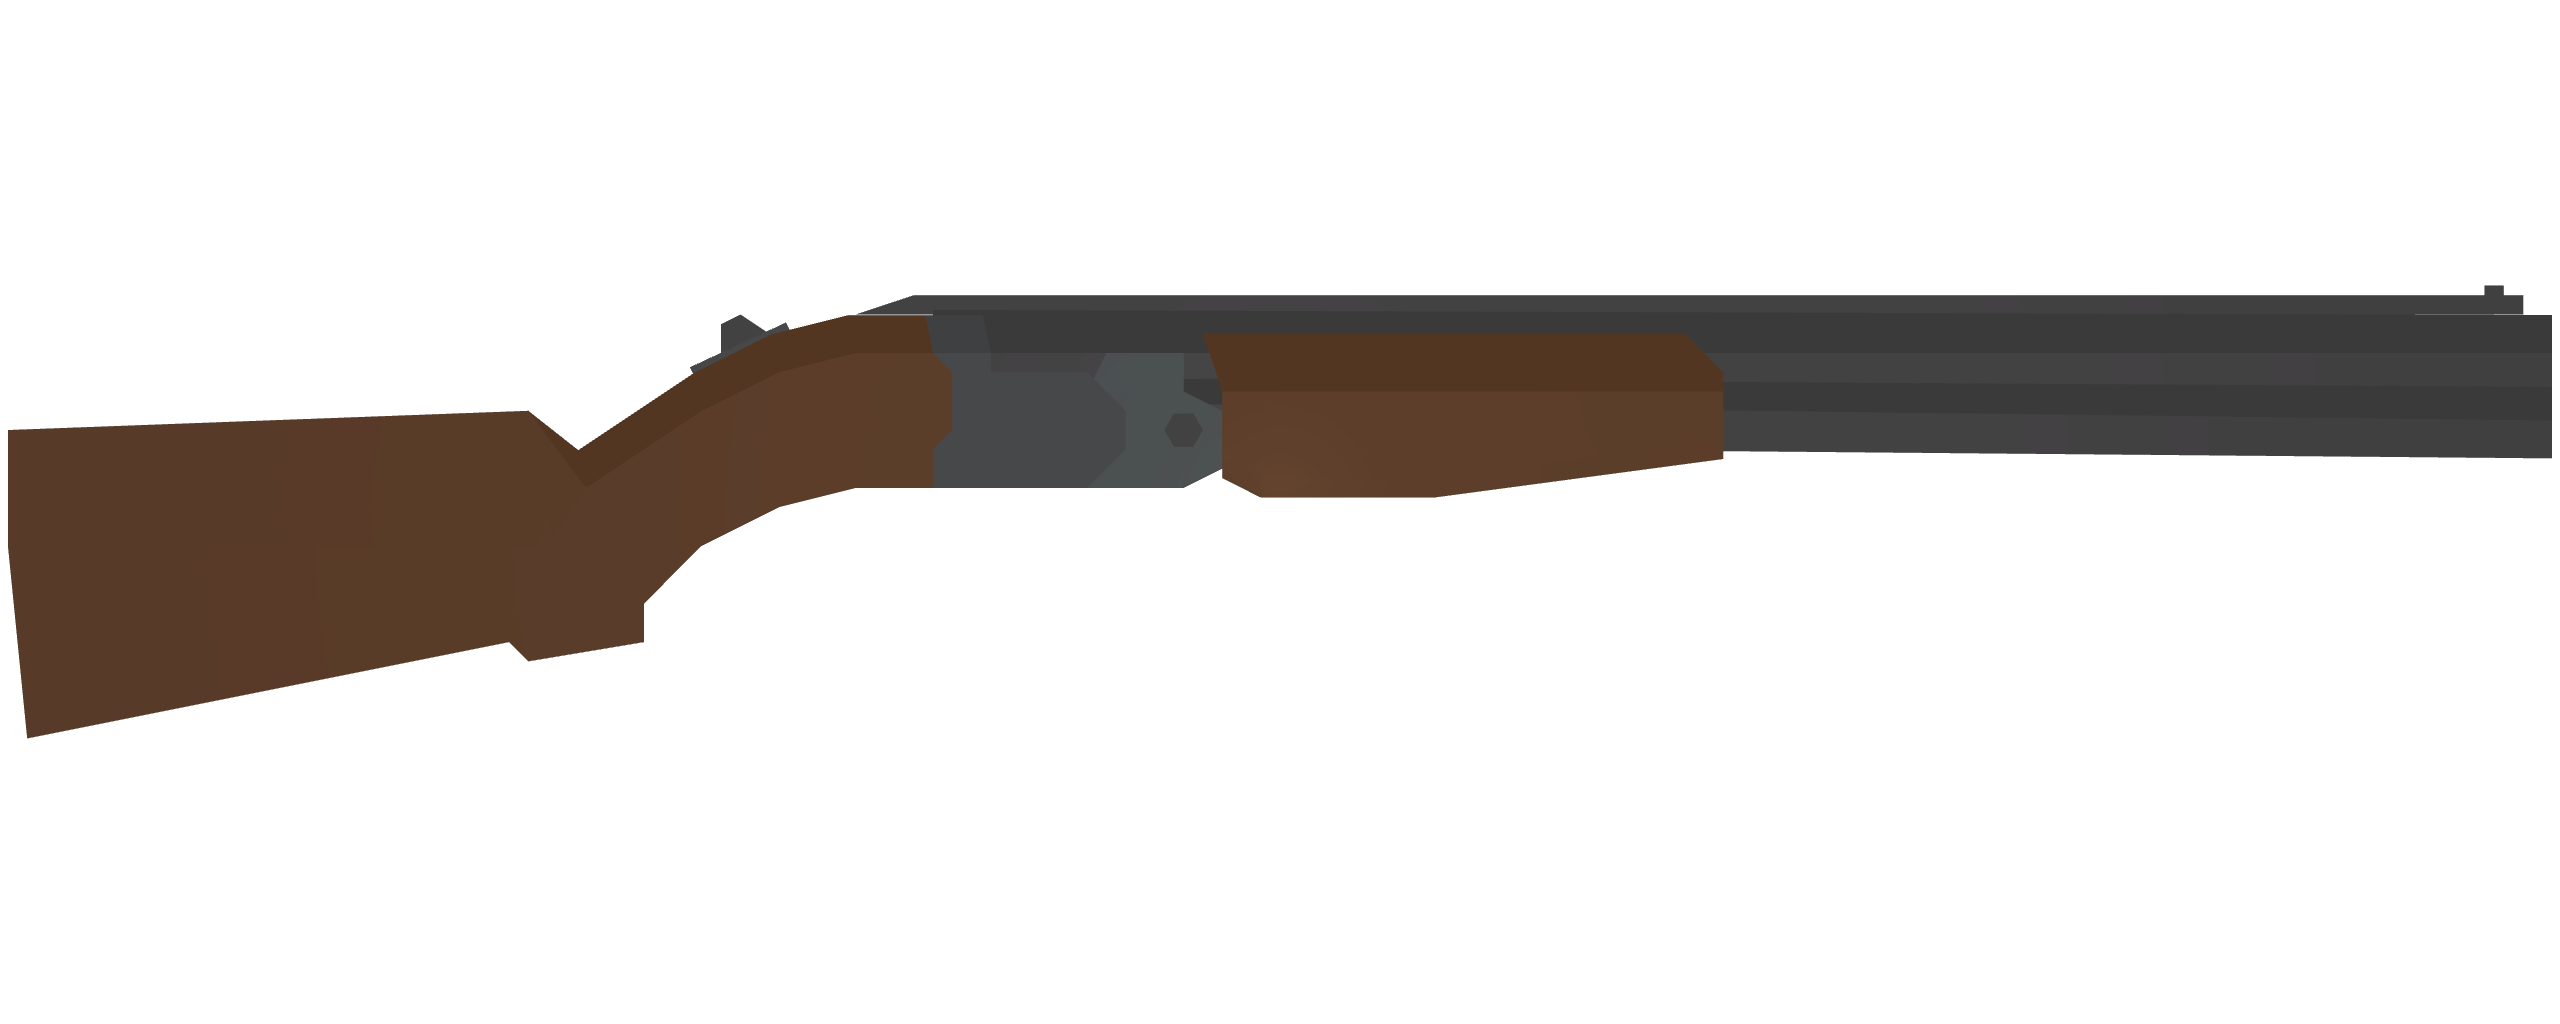 Unturned Uncreated Warfare Mods & All ID List + Attachments - Neutral Weapons - 43D6AFC